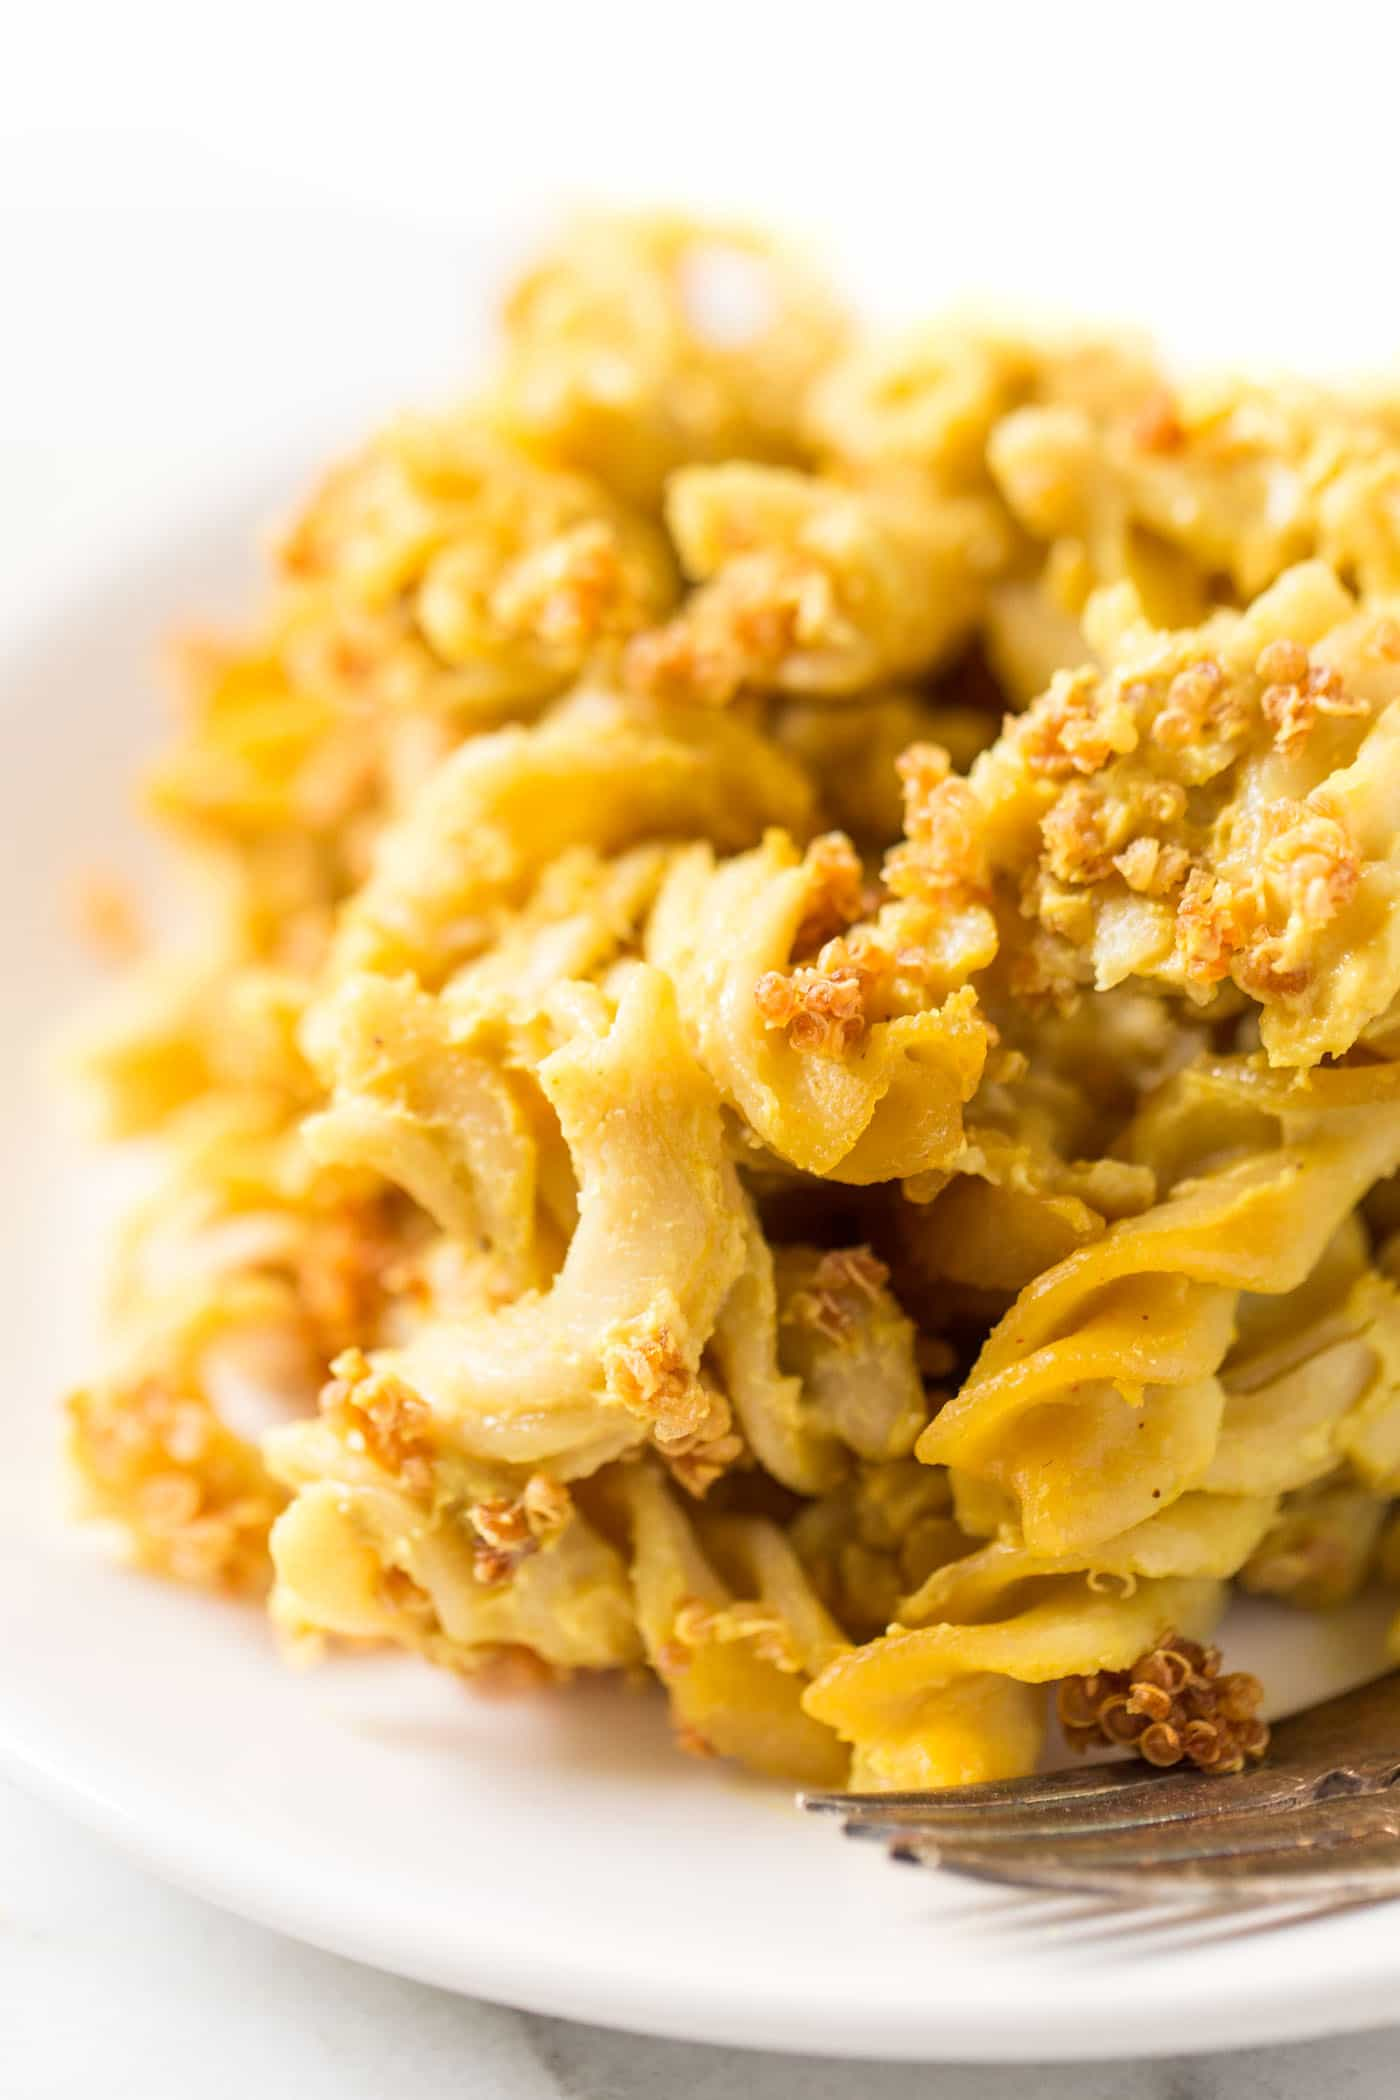 This is THE BEST vegan mac and cheese recipe ever! So simple to make, packed with nutrients and delicious!